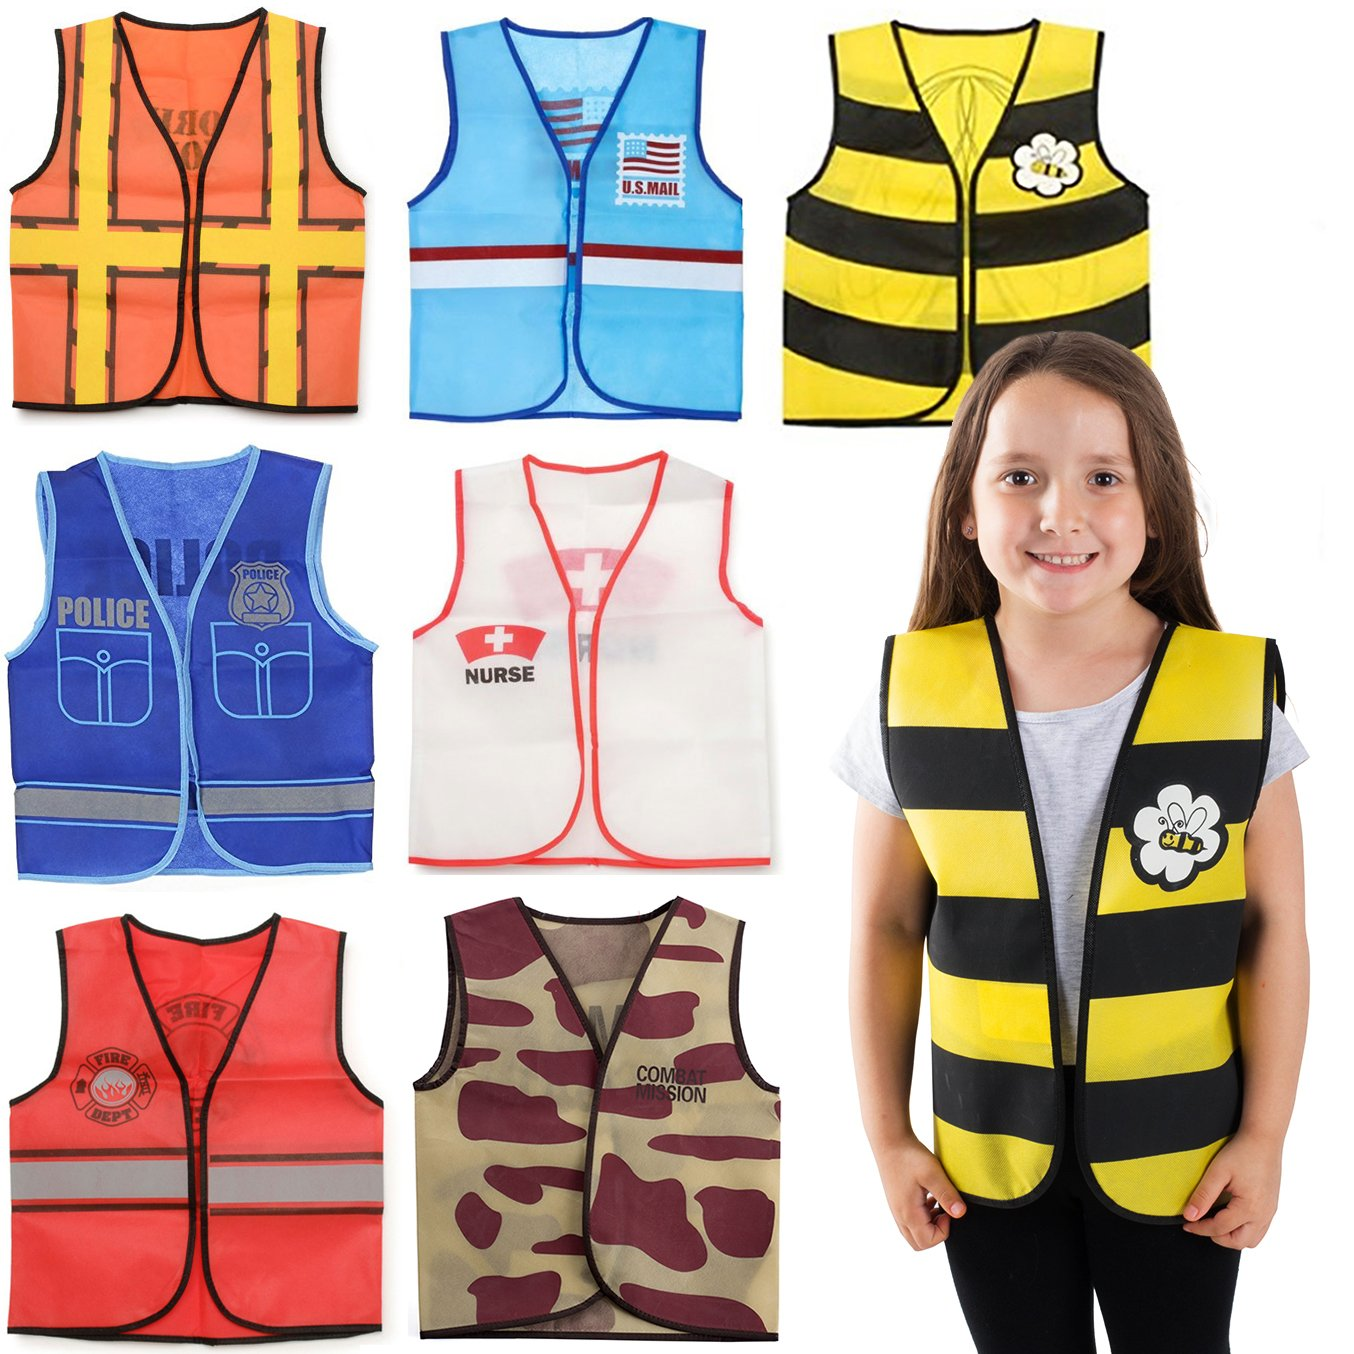 Dress up Clothes - 7 Pc Set - Costumes for Kids - Costume Vests Kids - Role Play Costume Sets by Tigerdeo